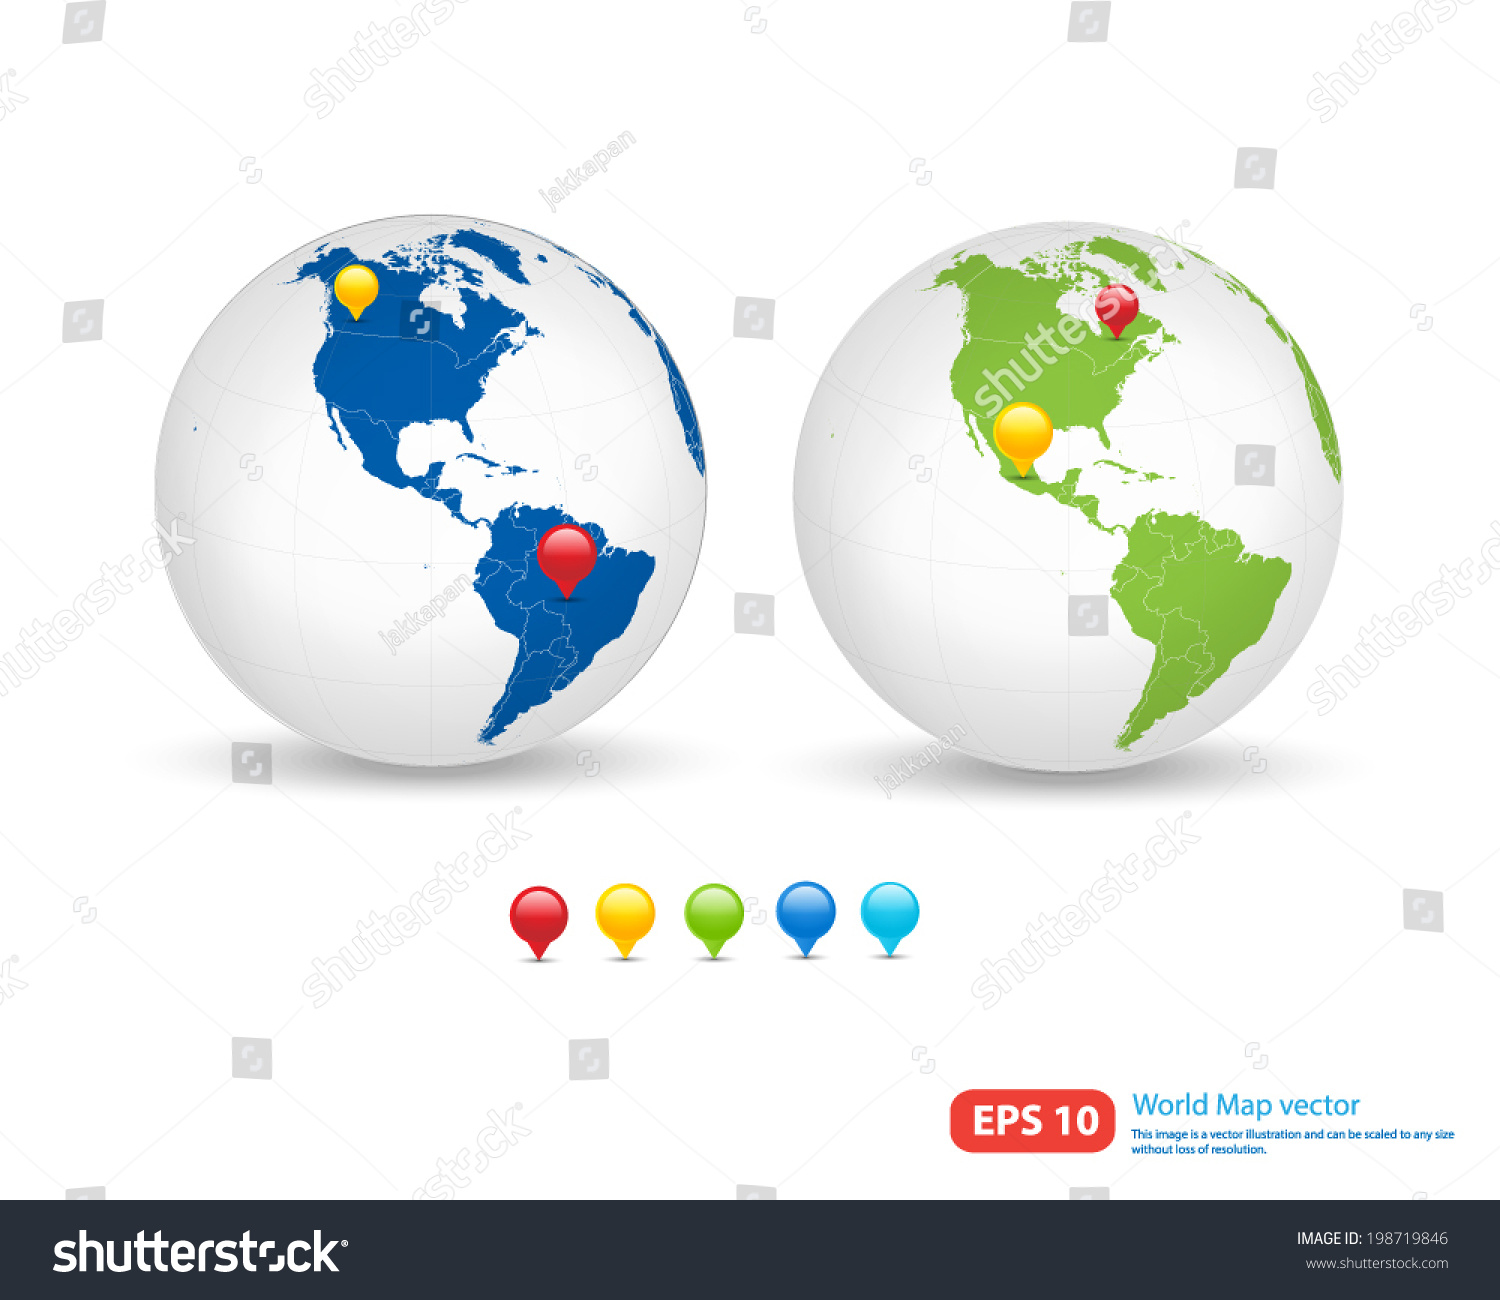 New world map globe pin marker vectores en stock 198719846 new world map with globe and pin marker location vector format vector format gumiabroncs Gallery